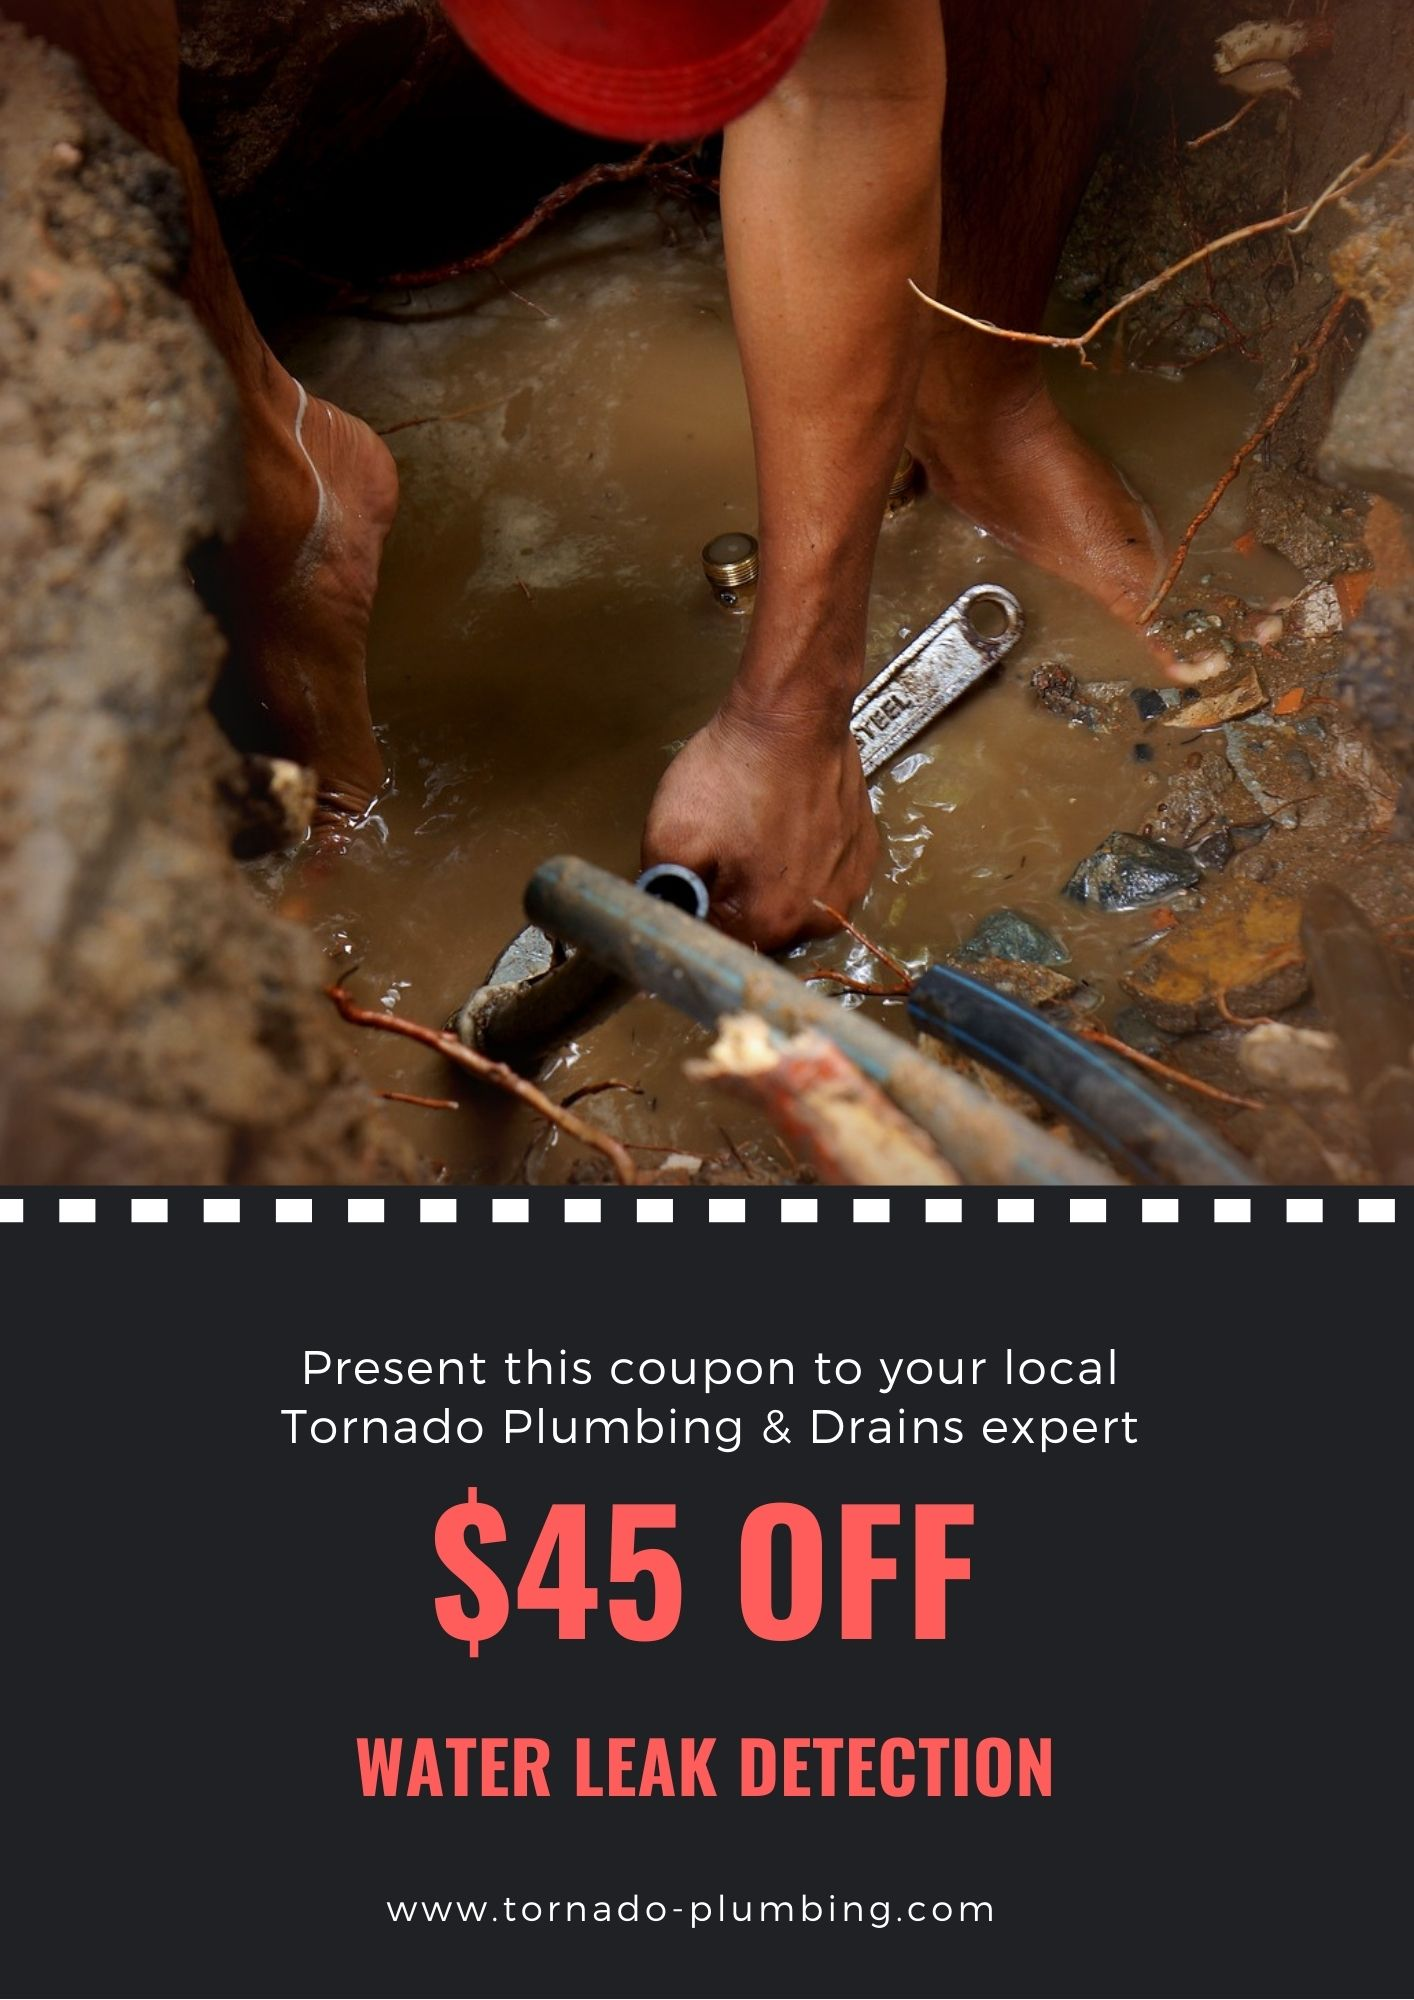 $45 OFF Water Leak Detection Coupons Online Canada Tornado Plumbing & Drains